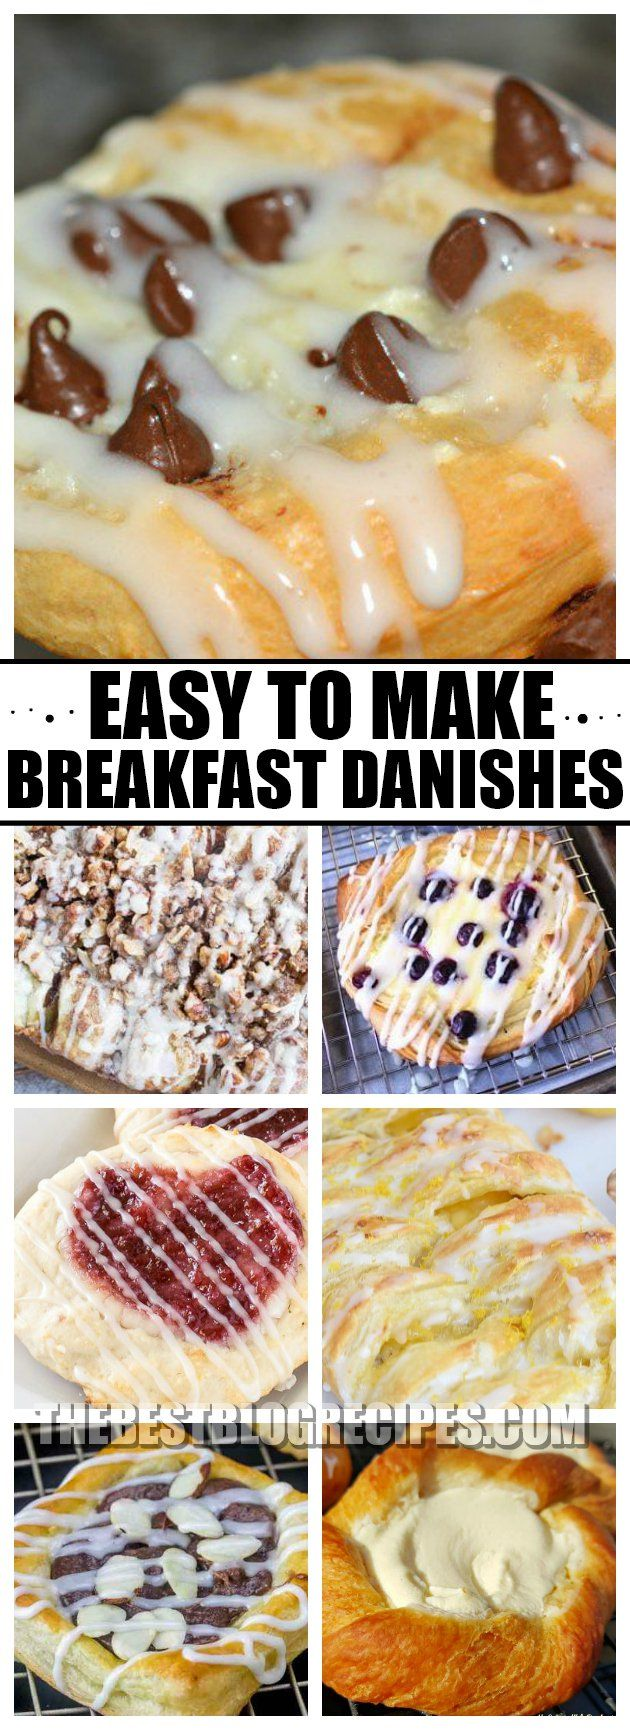 These Easy Crescent Cheese Danishes use simple ingredients and come together quickly! They are the perfect breakfast for your family and friends on the weekend or even during the holidays! via @bestblogrecipes